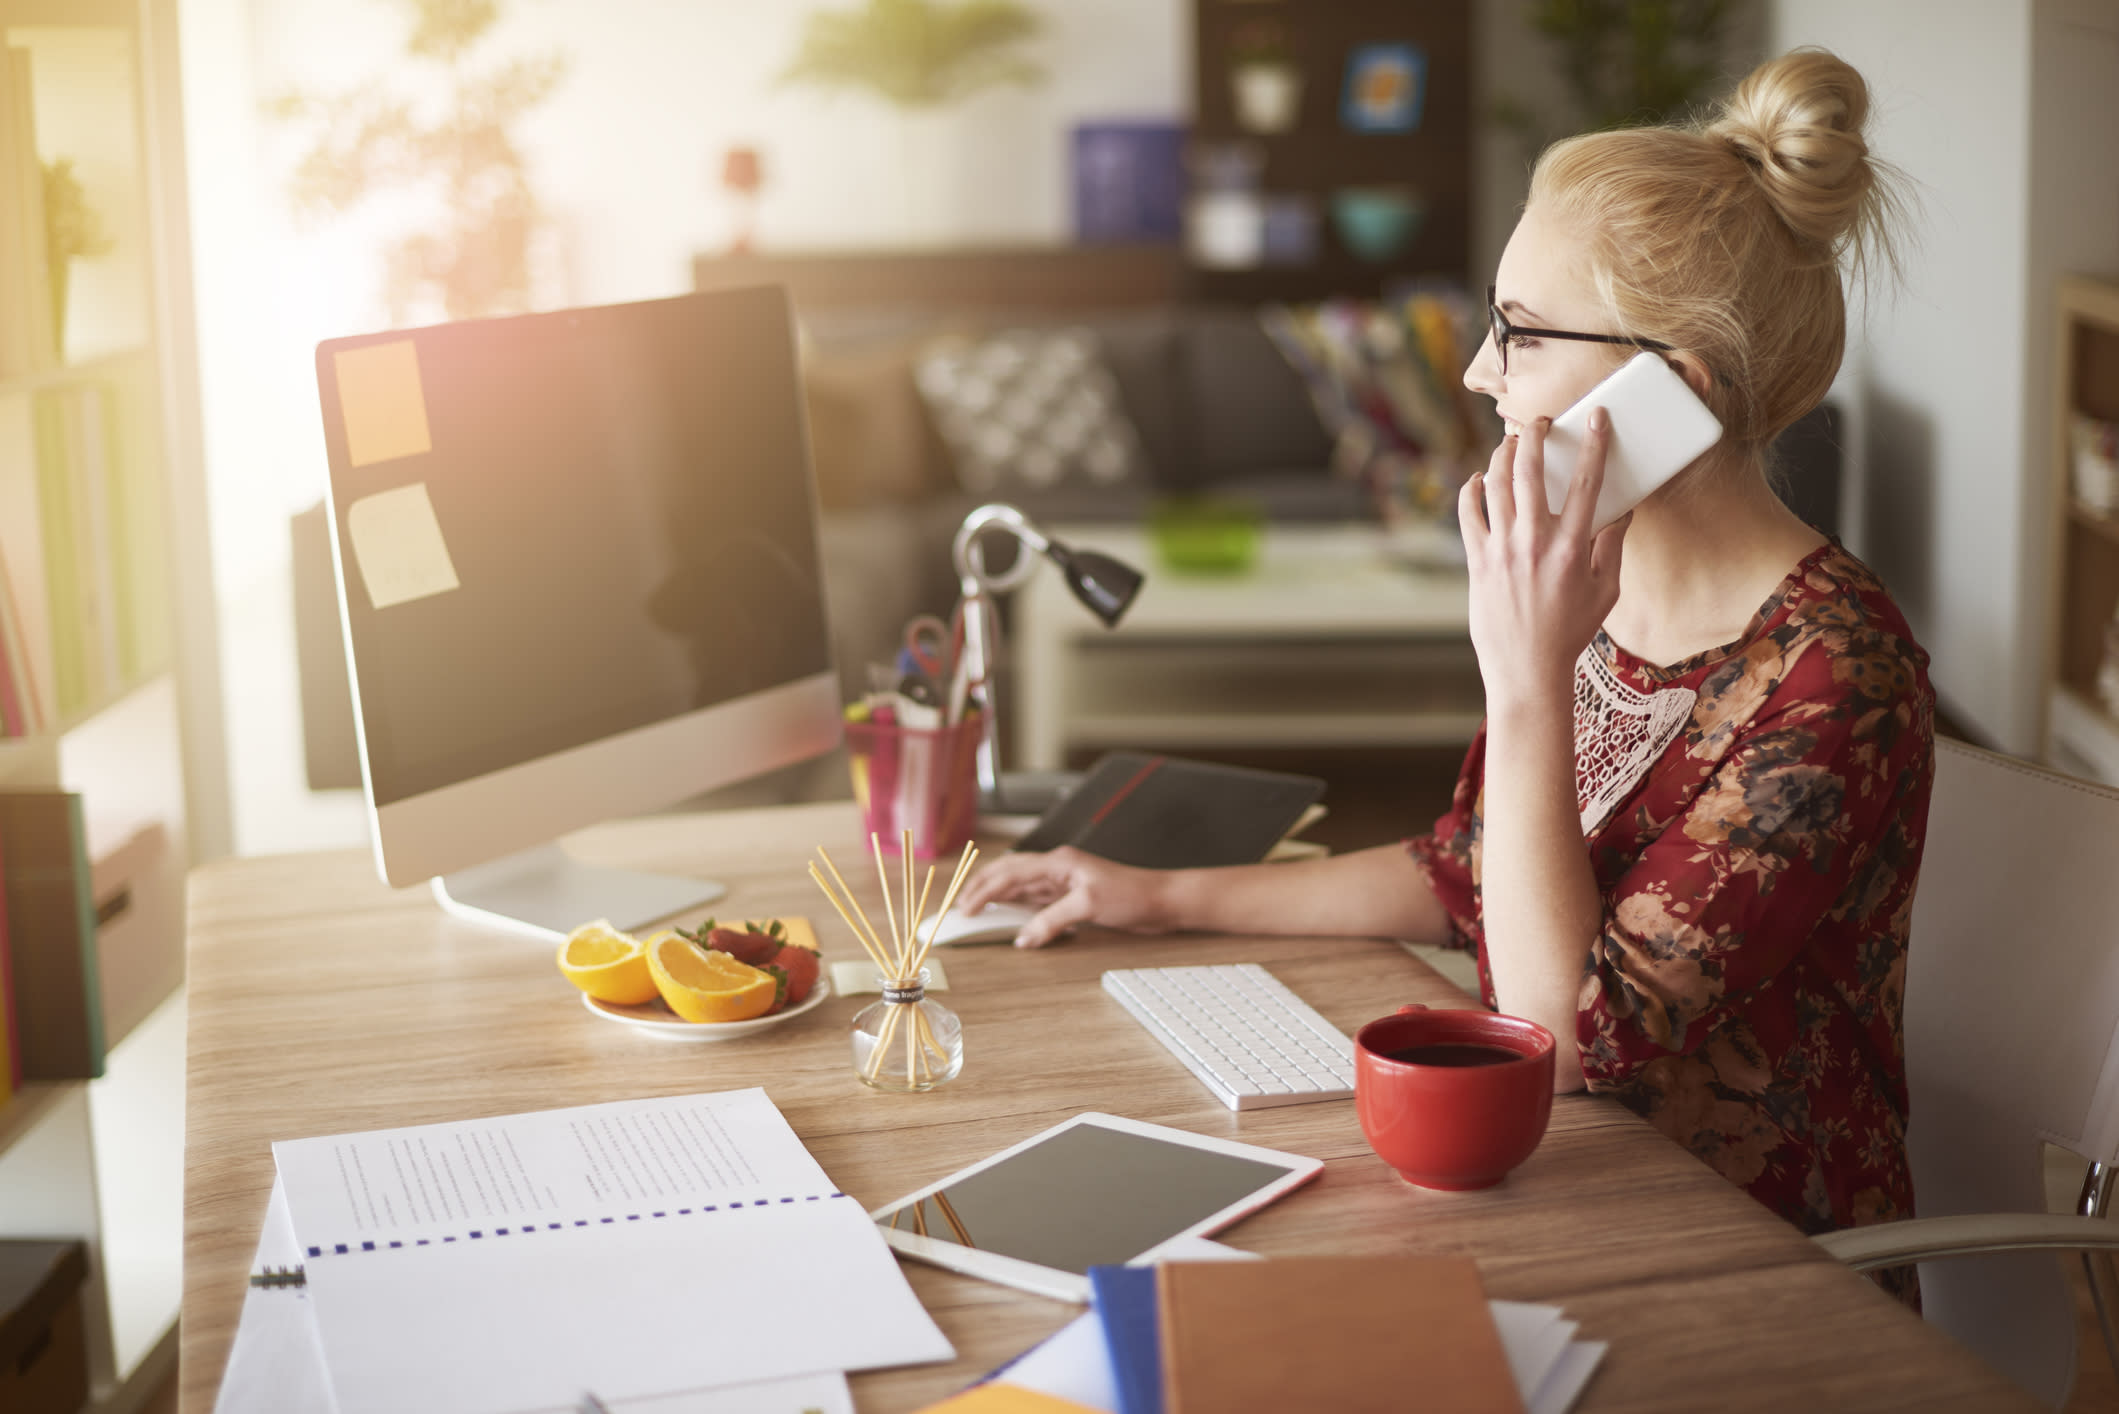 3 Ways a Flexible Work Schedule Could Save You Money